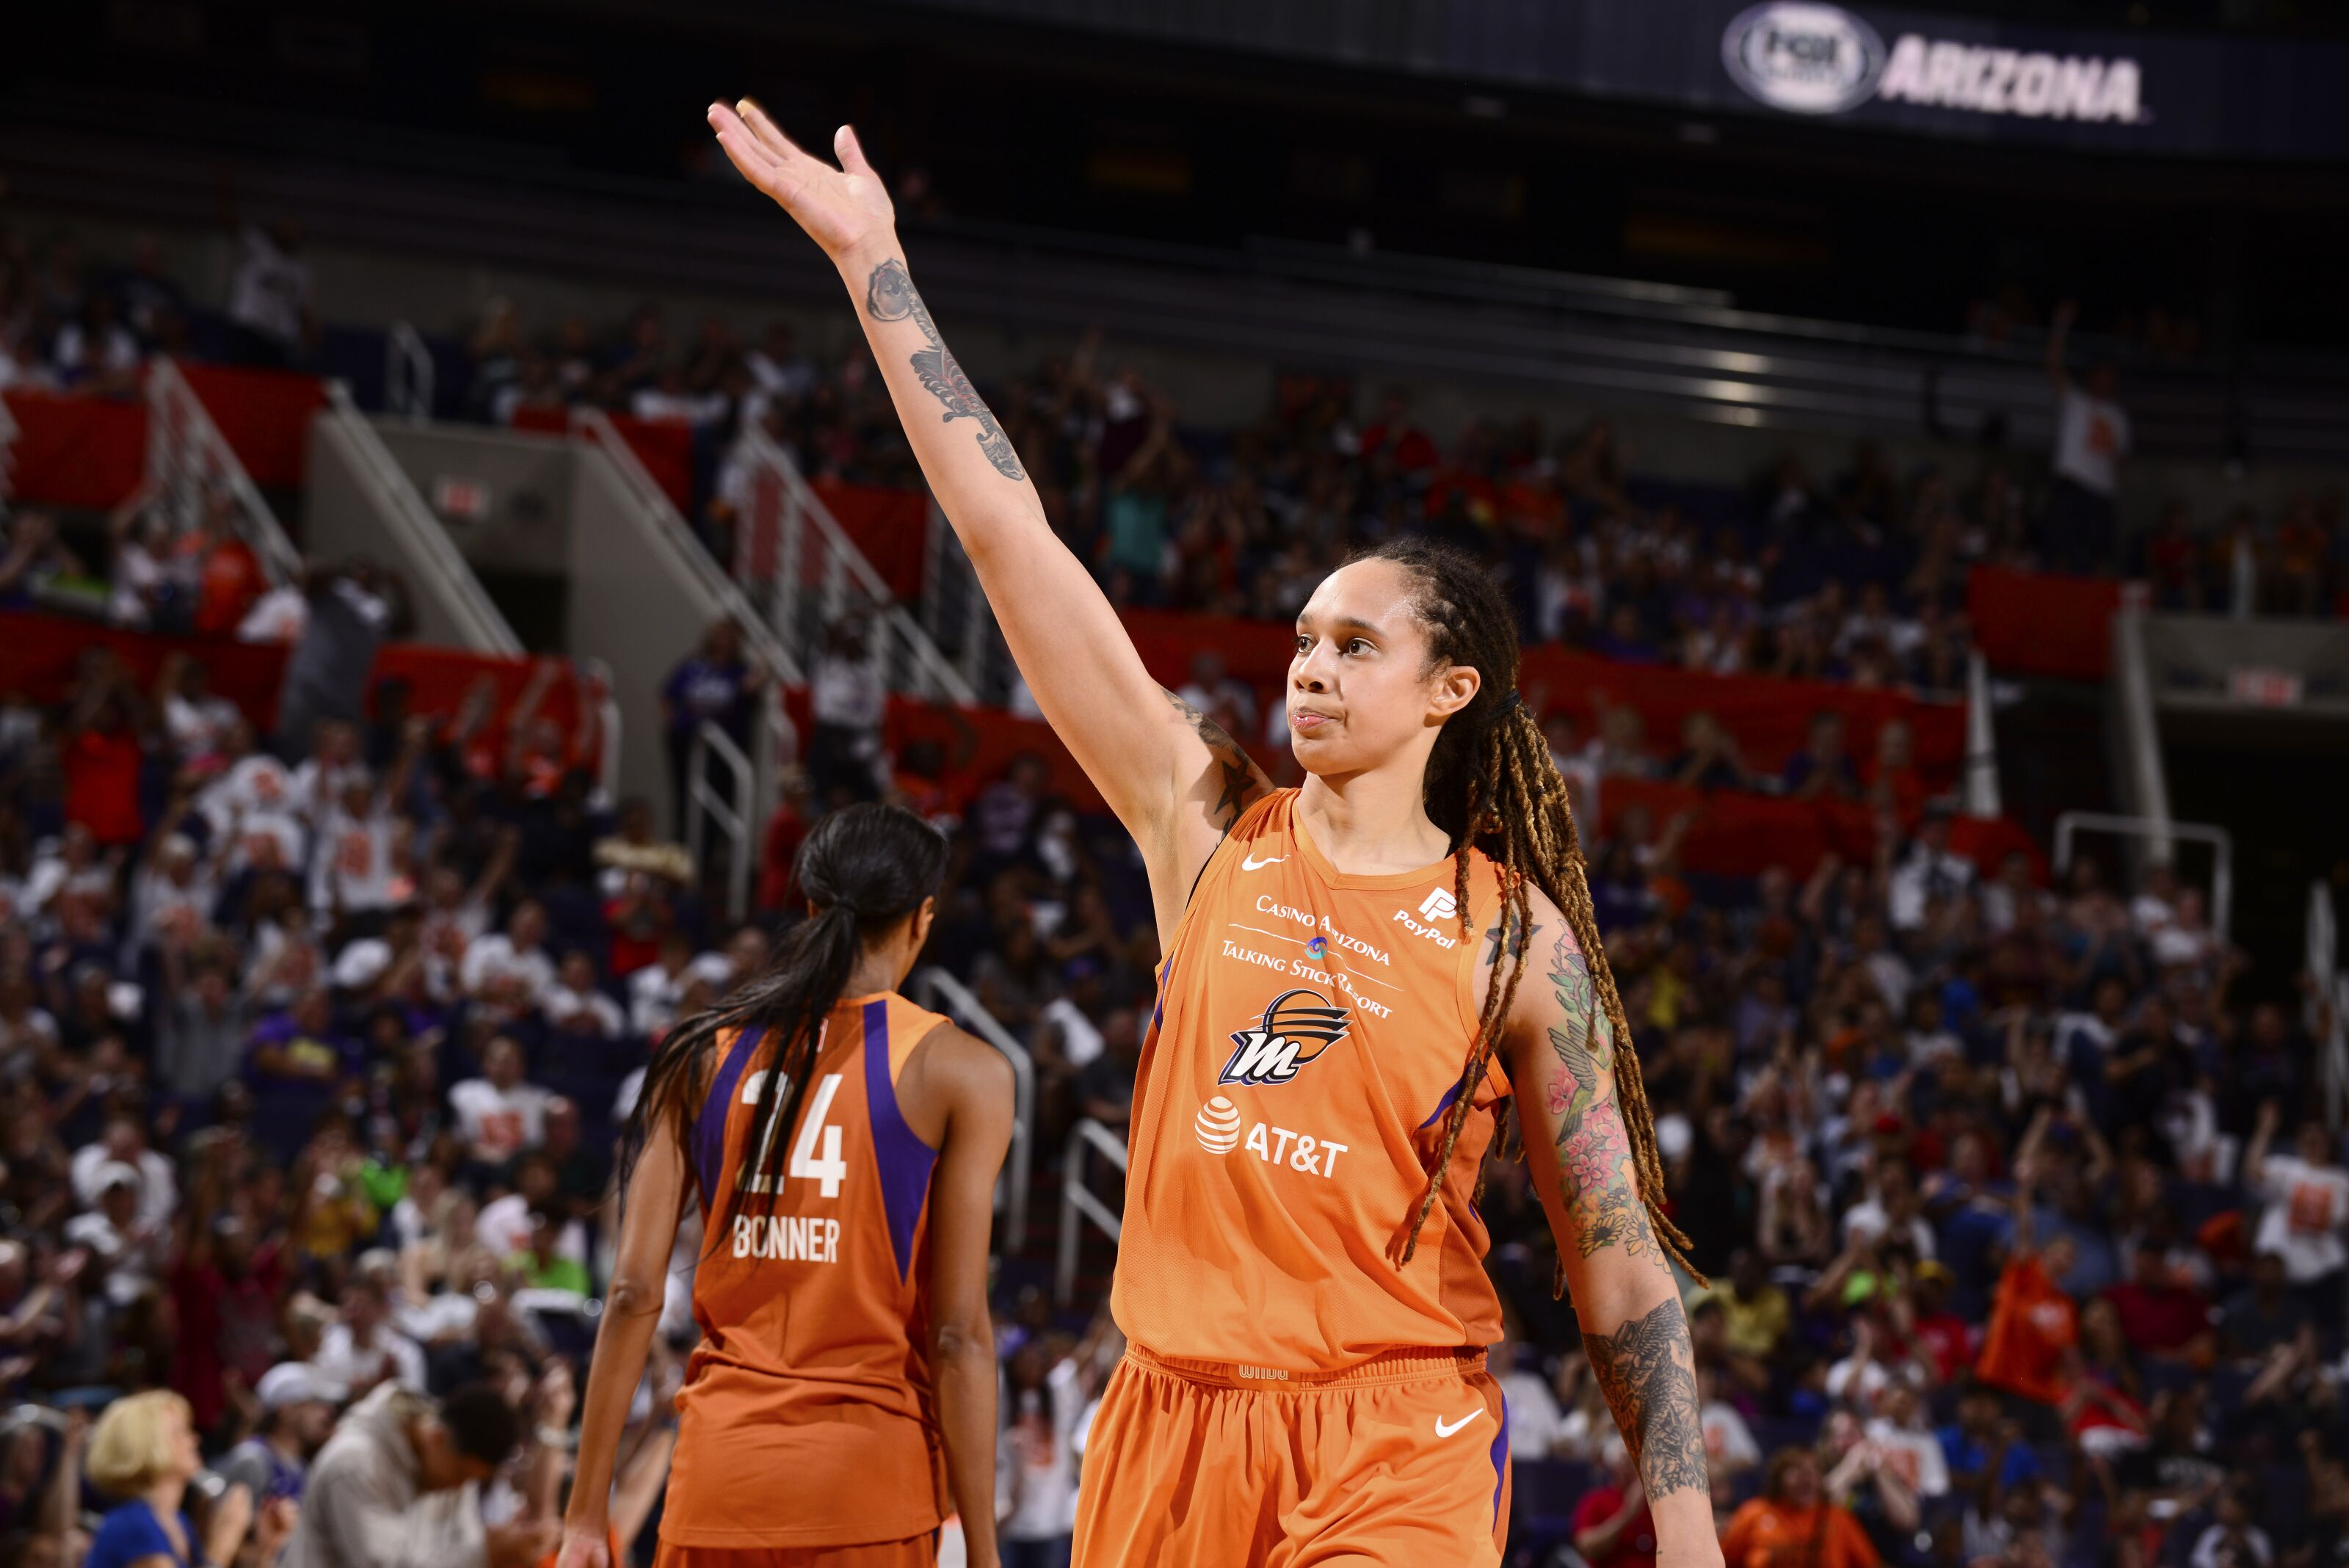 'Better team' won: L.A. Sparks defeat Phoenix Mercury on Pride Night